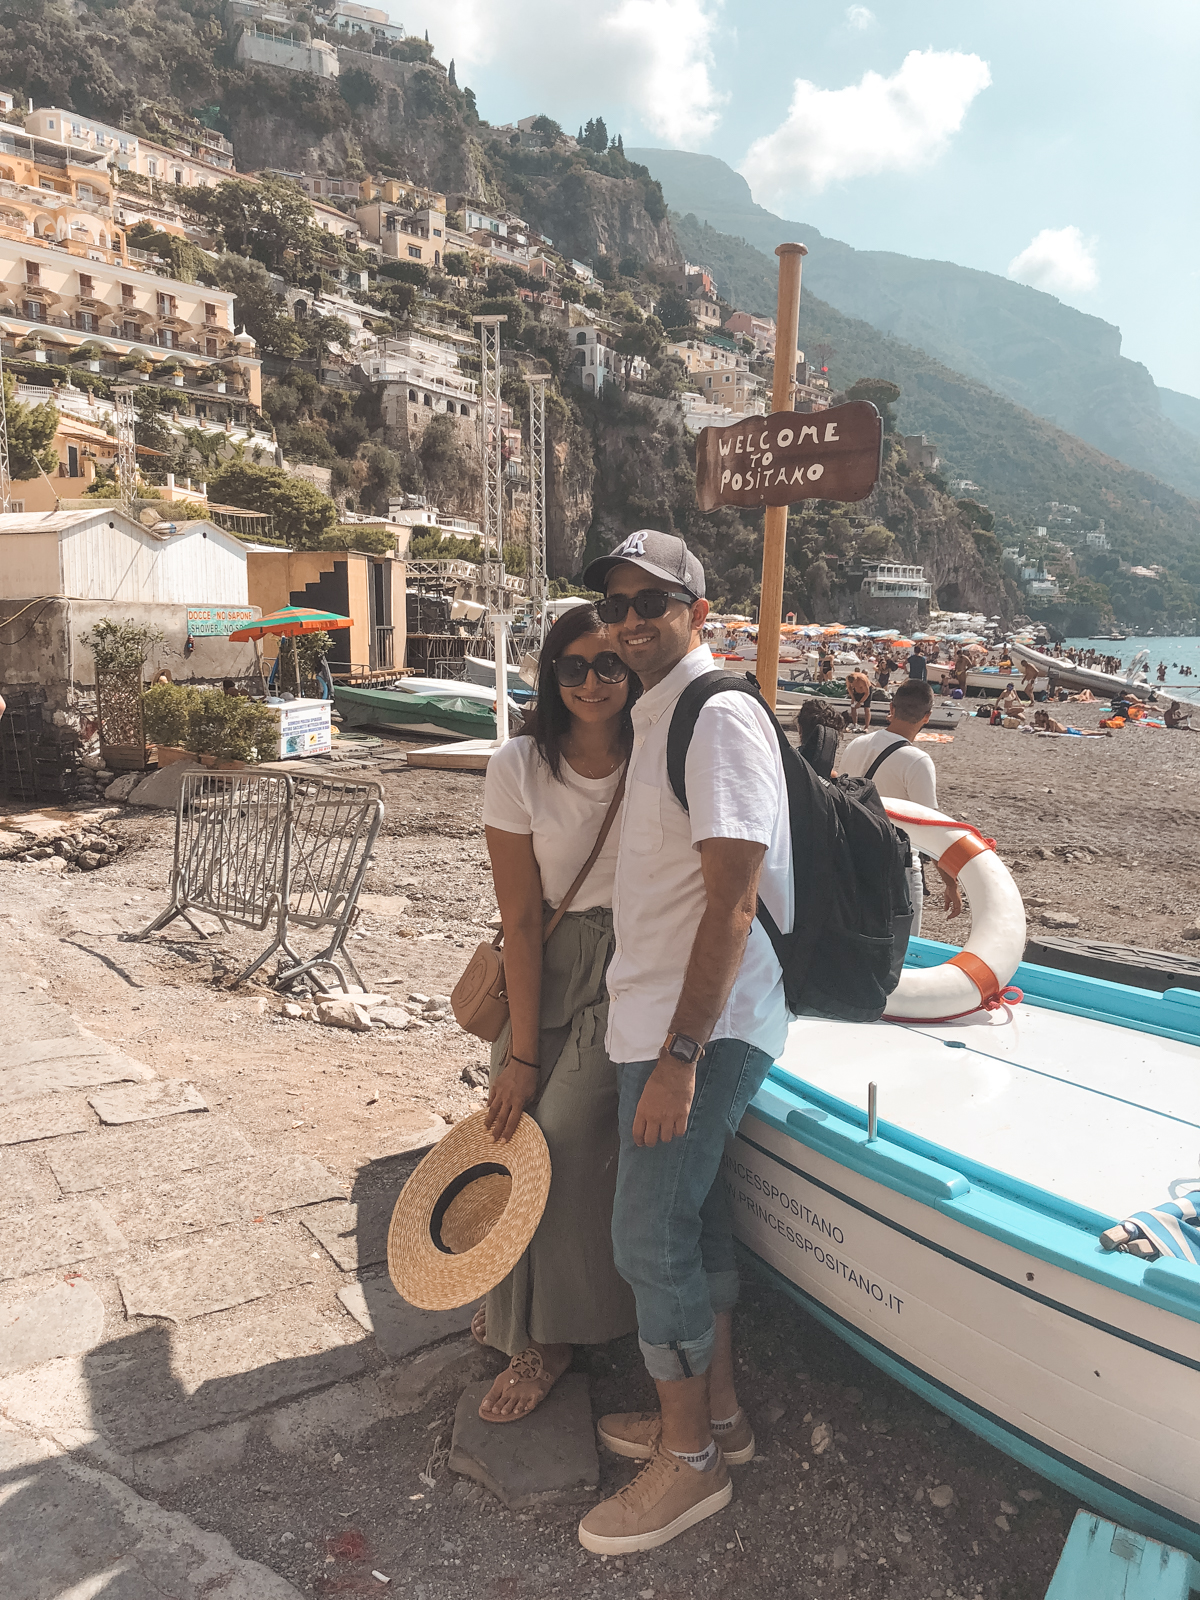 hubby and me with a 'welcome to Positano' sign near the water